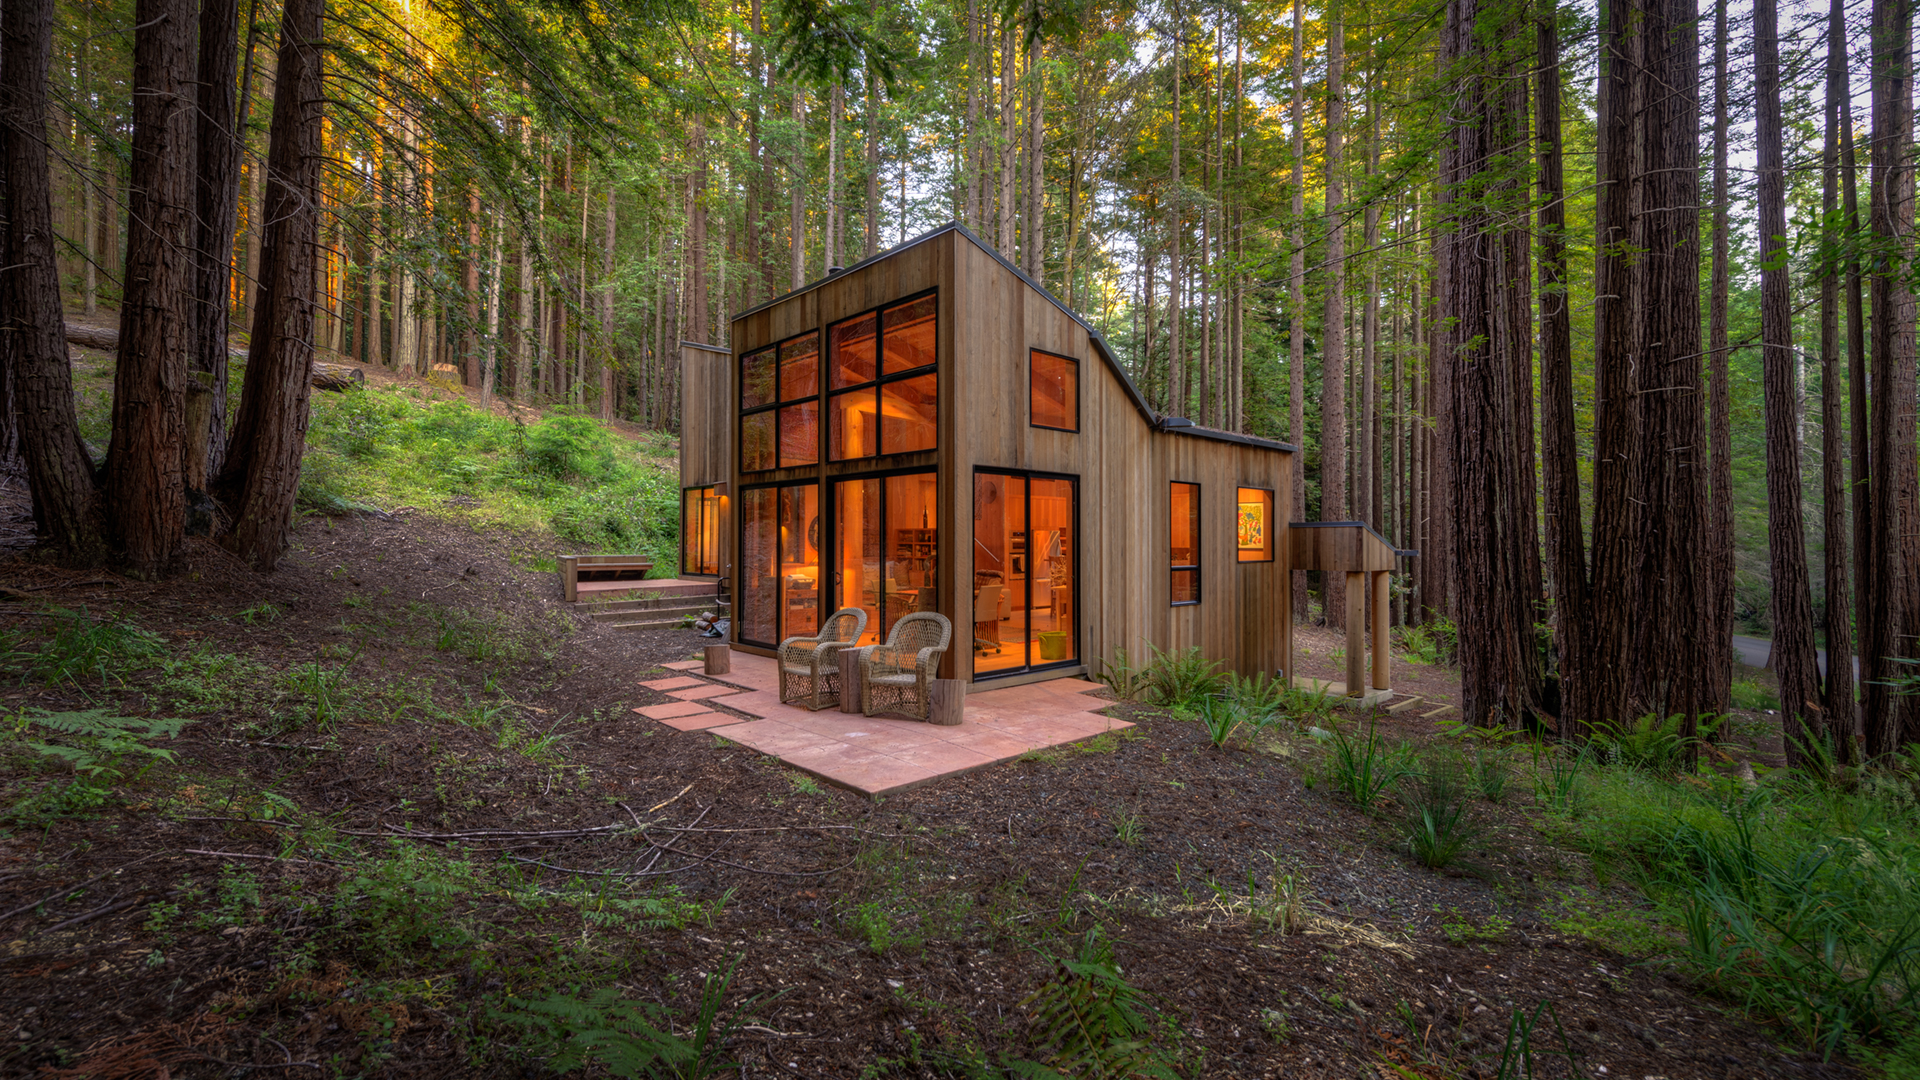 Sea Ranch Home amidst Majestic Redwoods